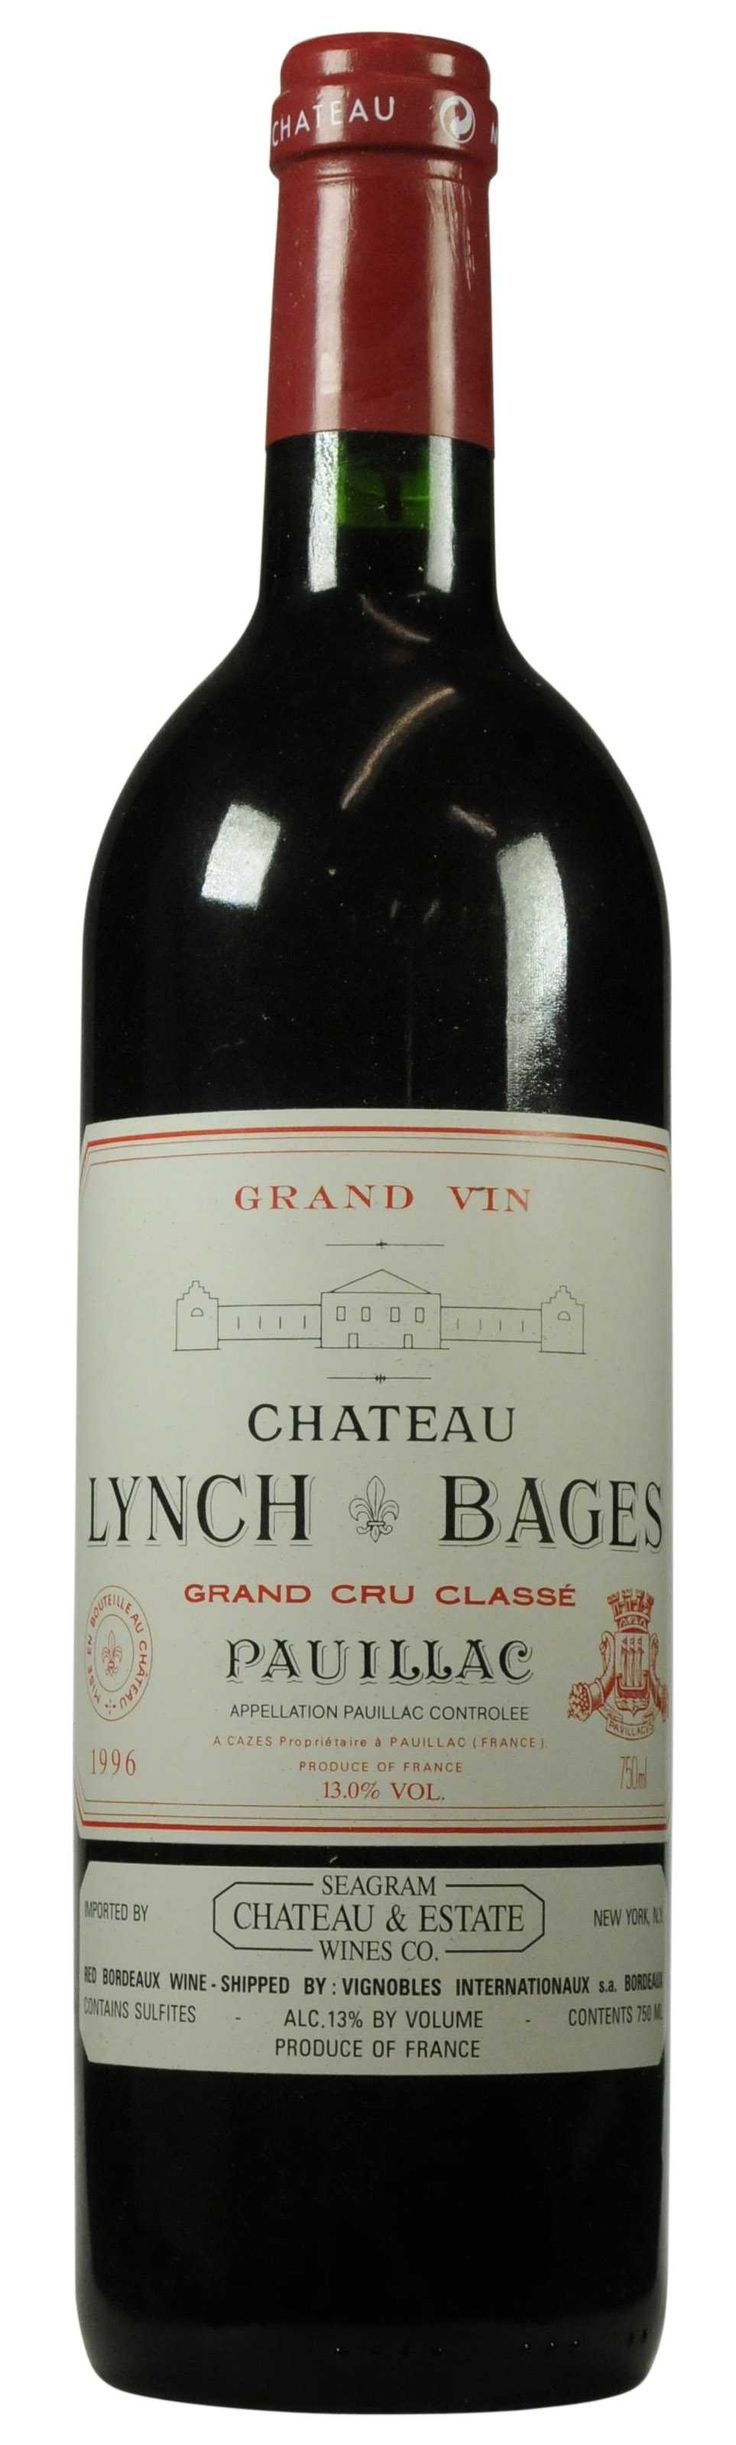 Château Lynch-Bages 1996  l Christie's Signature Cellars - Online Wine Auction New York Going on NOW- 18 February - 27 February...CLICK TO BID!